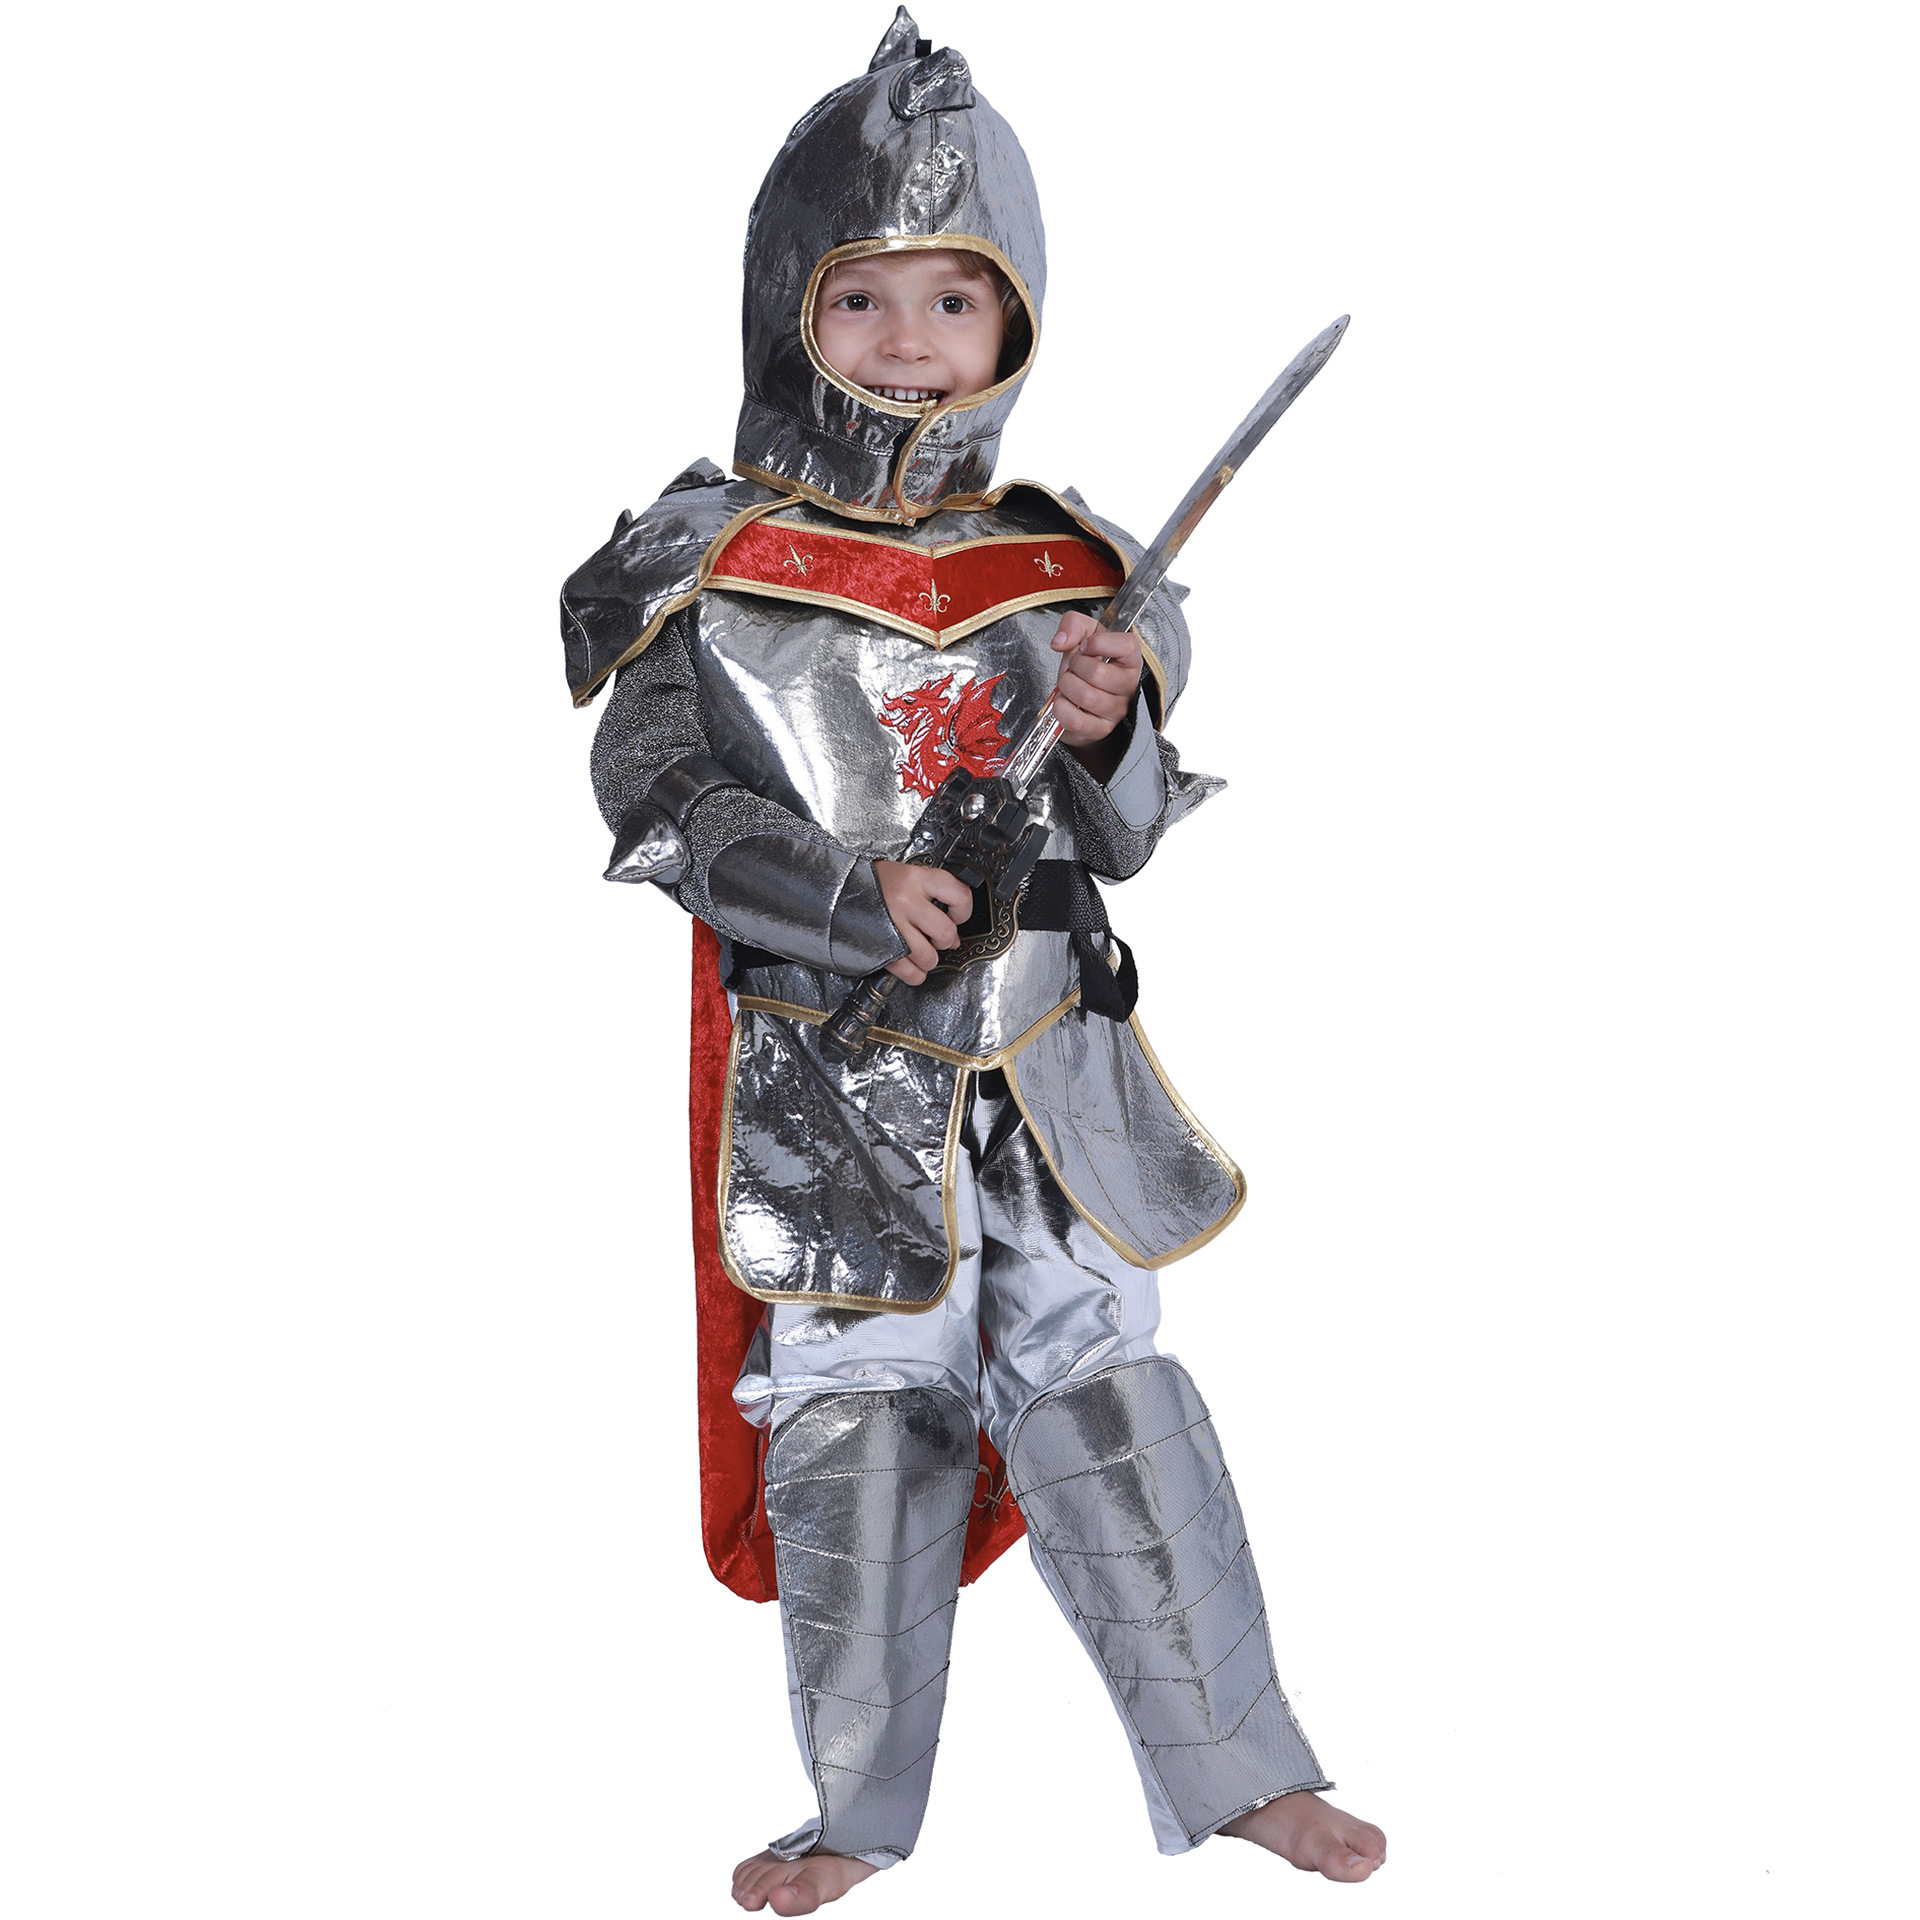 Halloween Kids Clothing Boys Zorro Masked Knight Costume Masquerade Cosplay Clothes Children's Knight Plays Suit for Cos Party